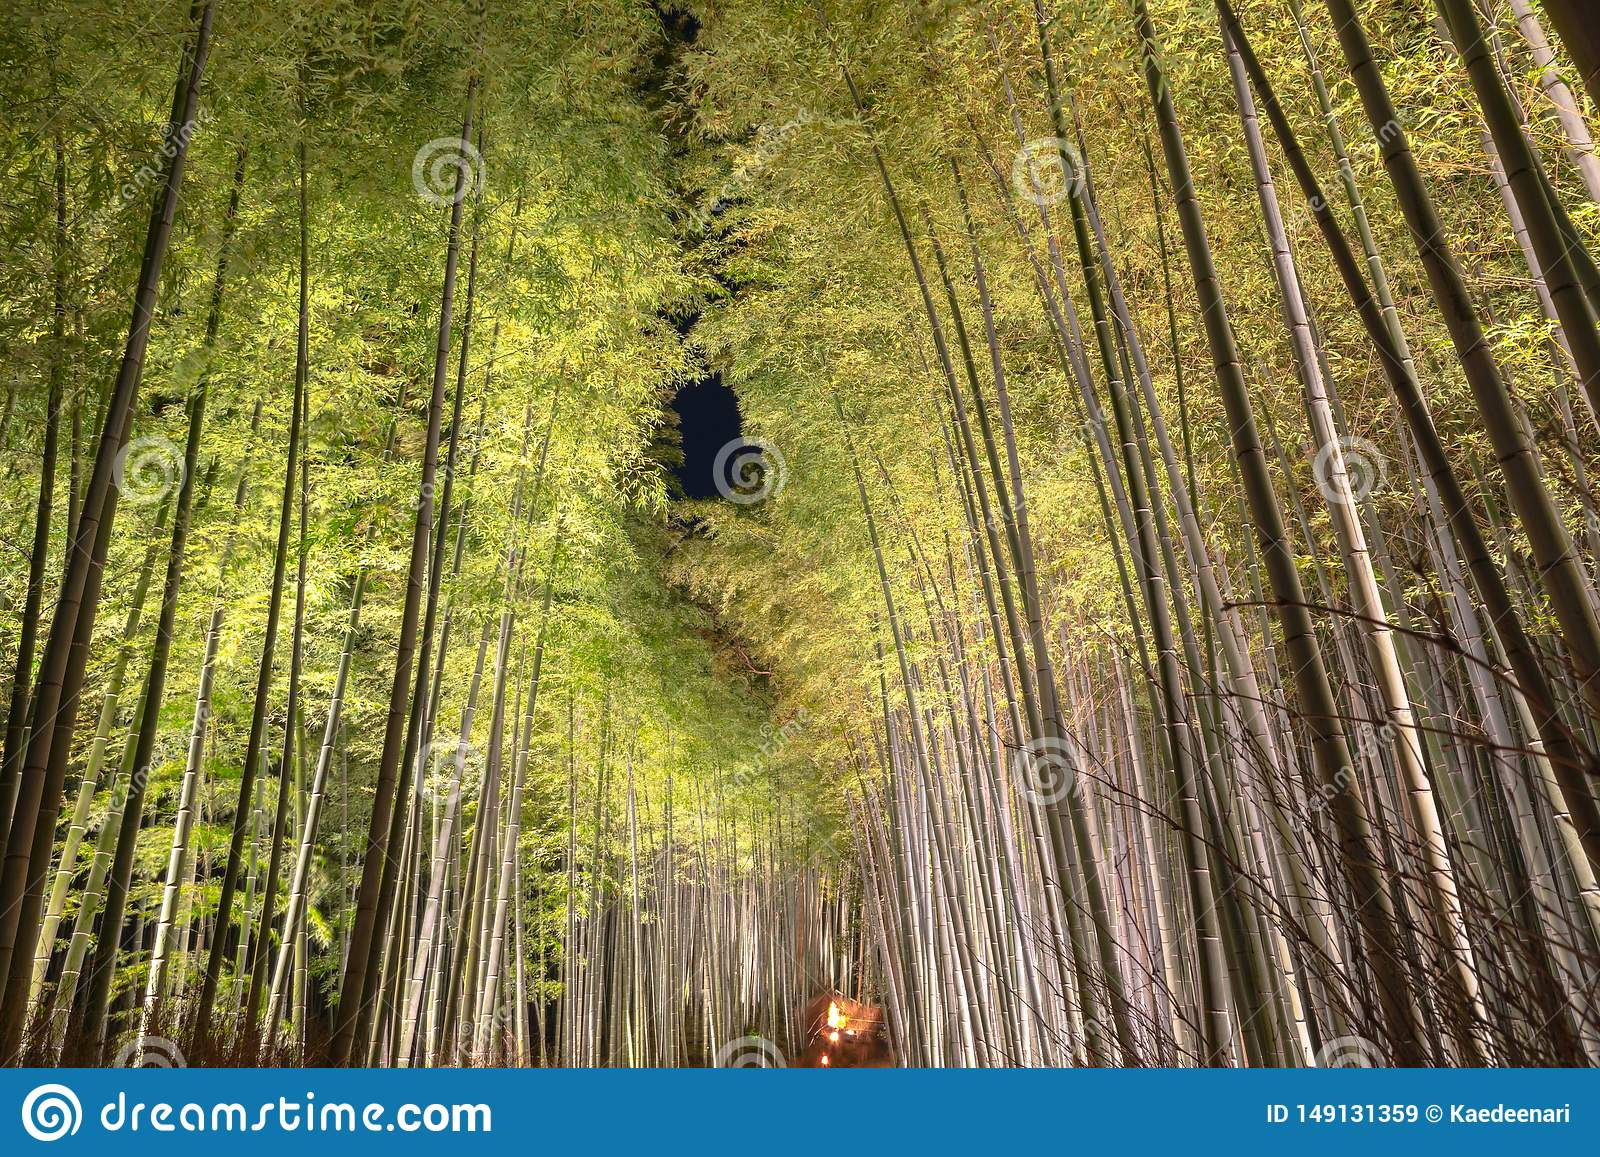 Arashiyama Bamboo Grove Zen garden light up at night